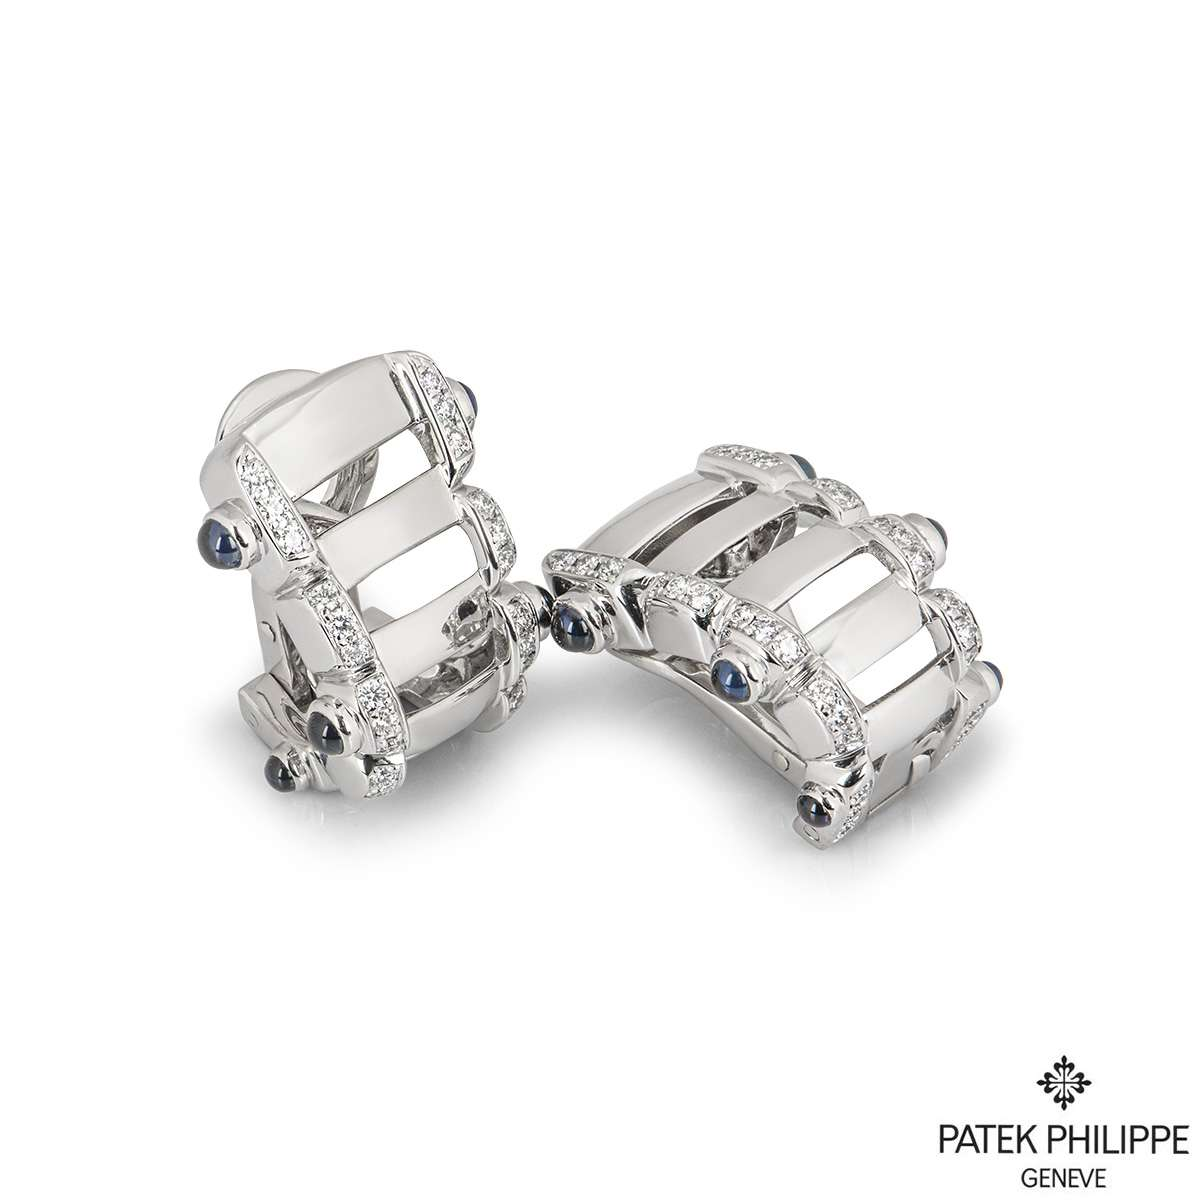 Patek Philippe White Gold Twenty-4 Earrings